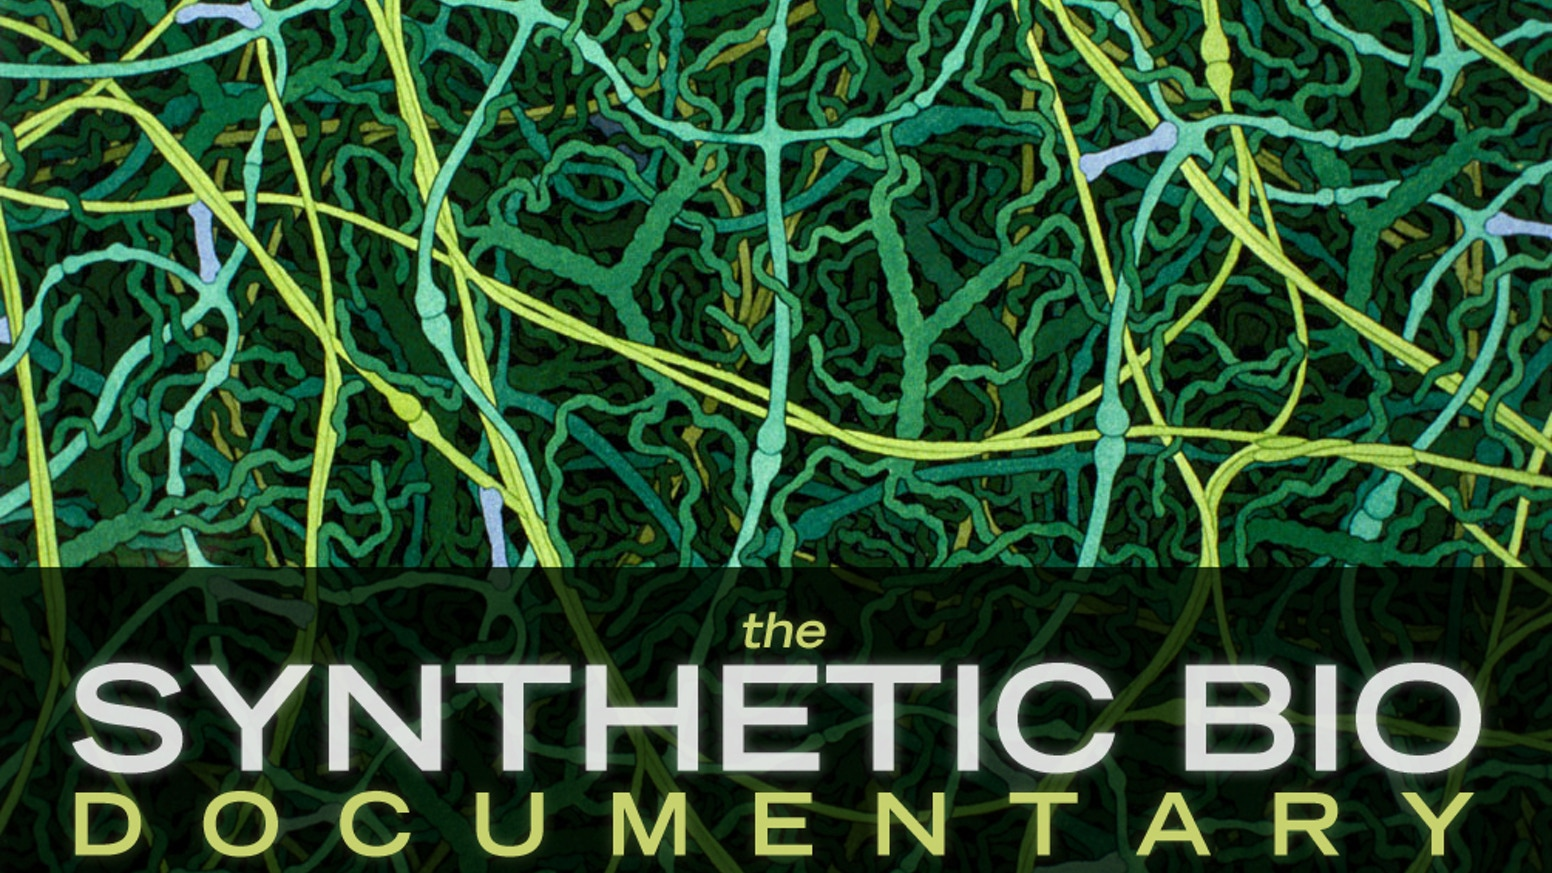 A Documentary Film about Synthetic Biology by Field Test Film Corps